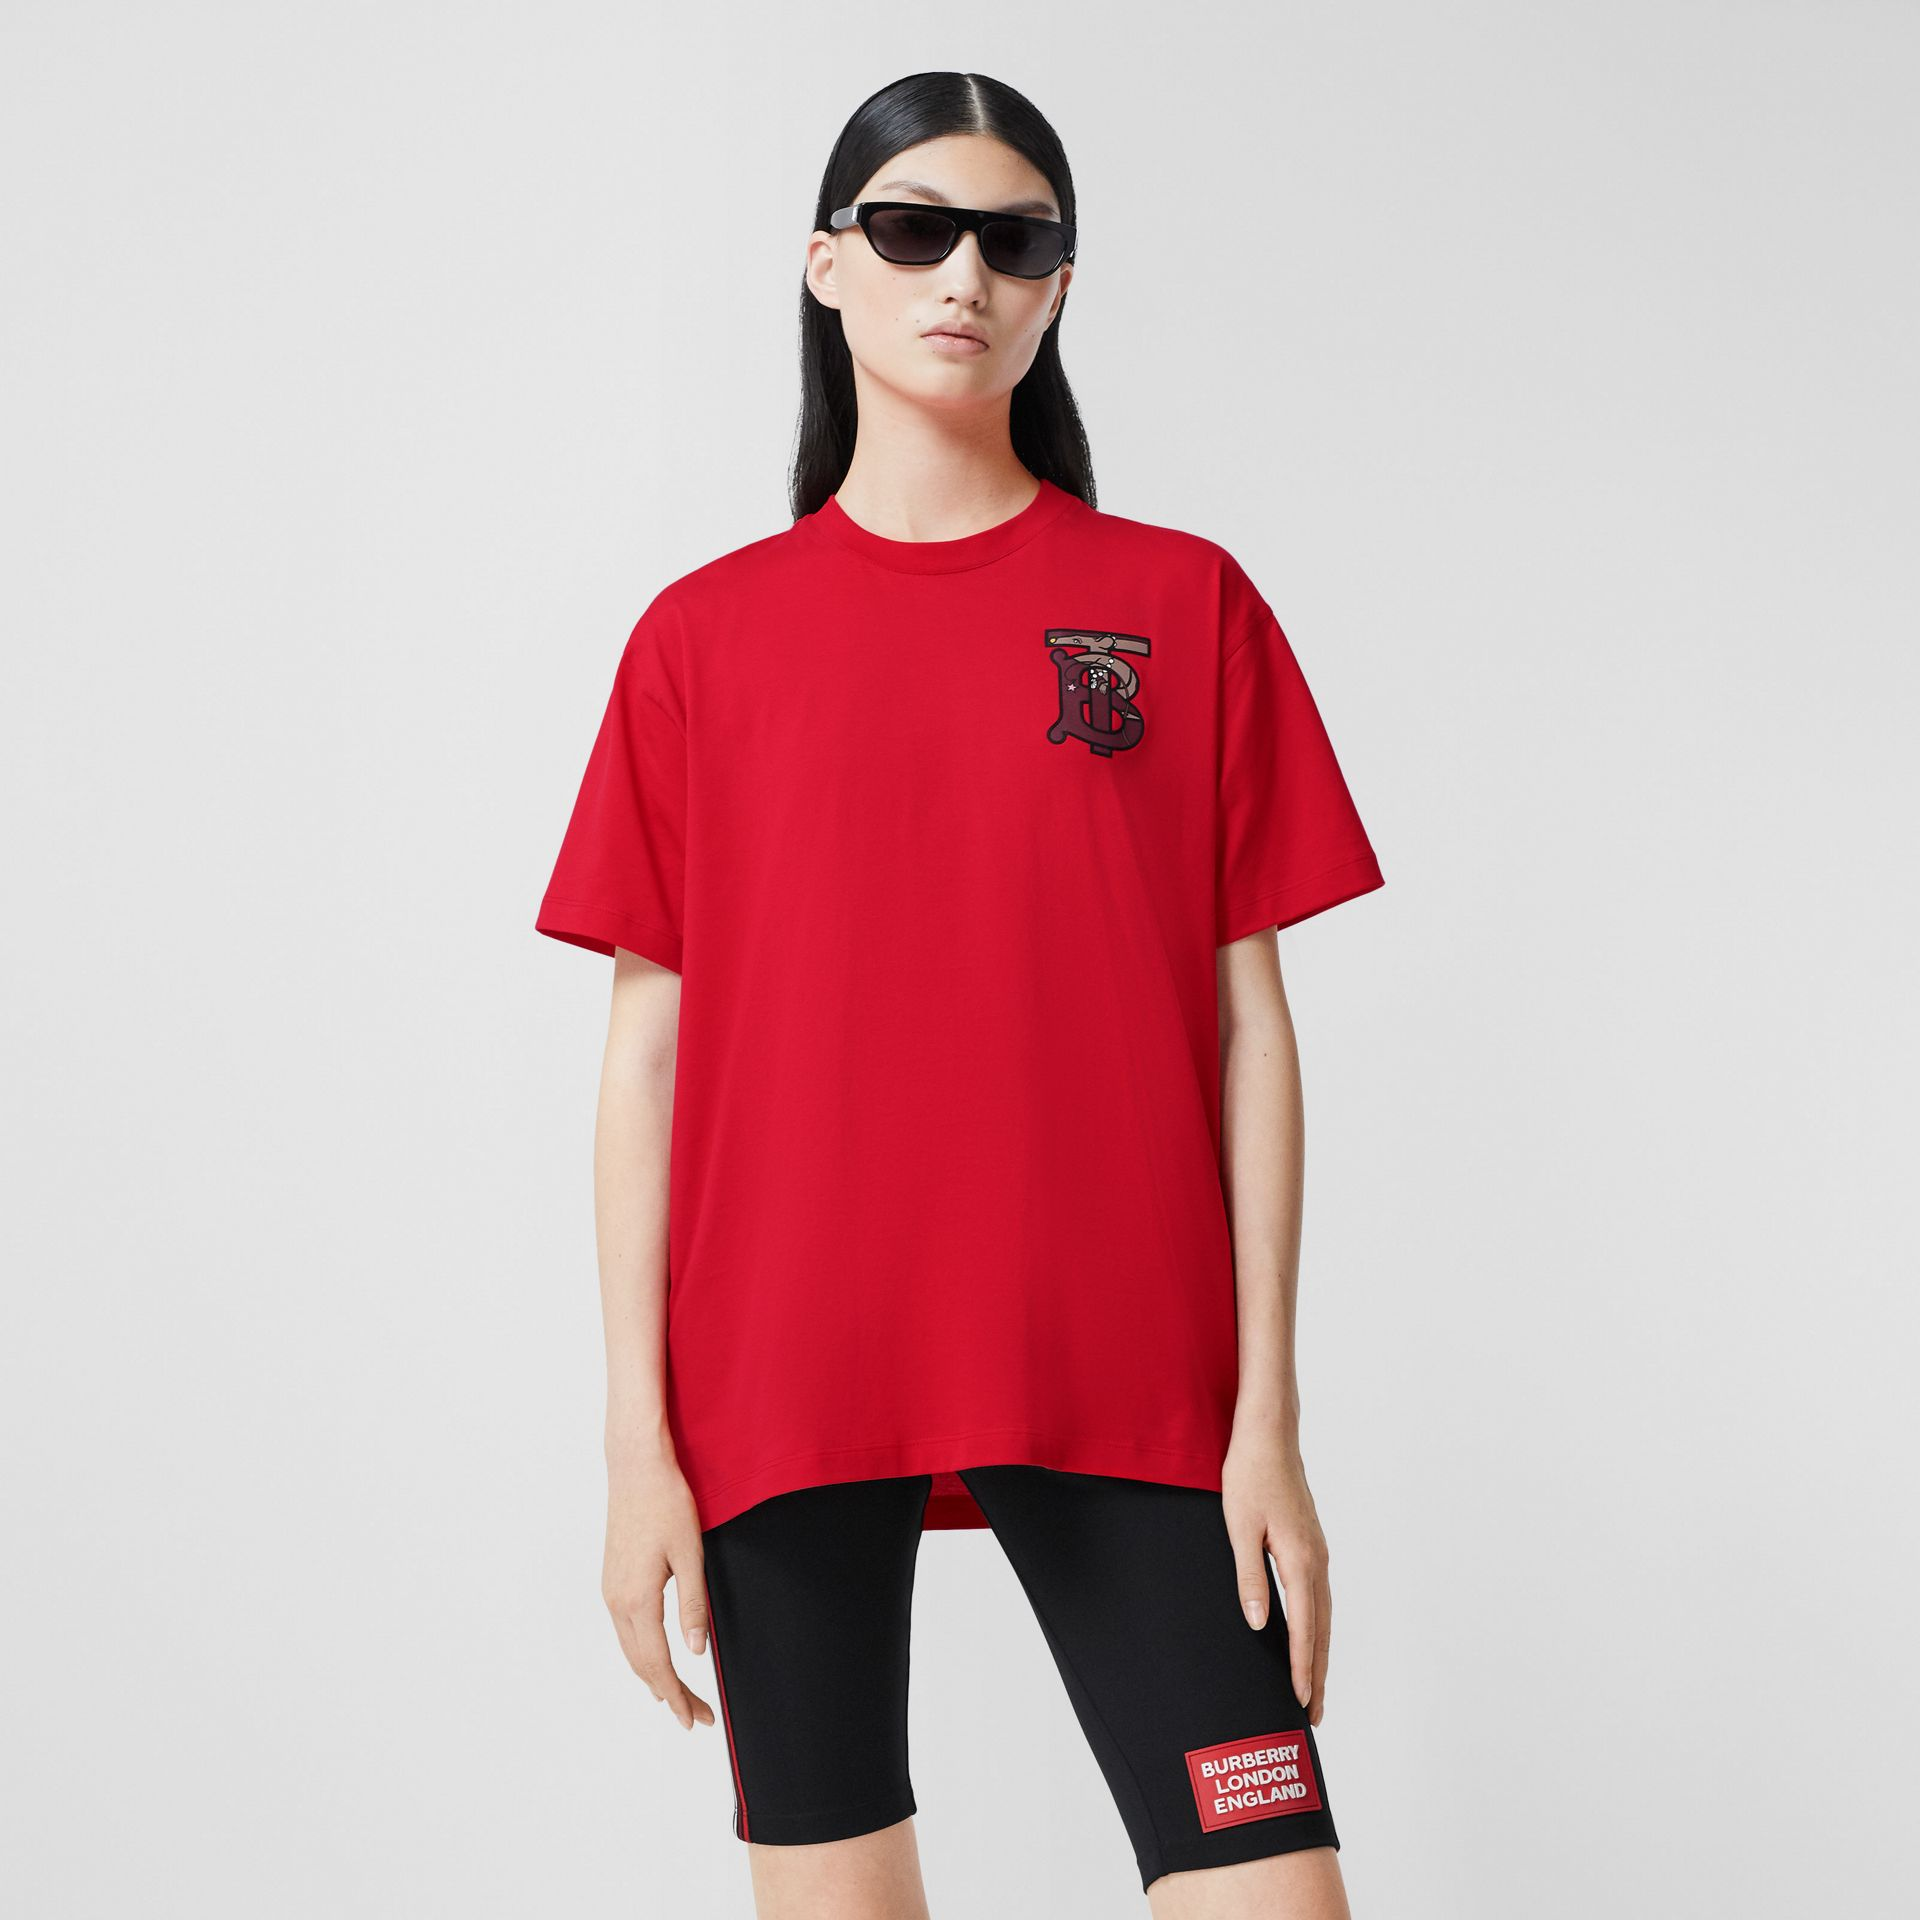 Monogram Motif Cotton Oversized T-shirt in Bright Red - Women | Burberry United Kingdom - gallery image 4